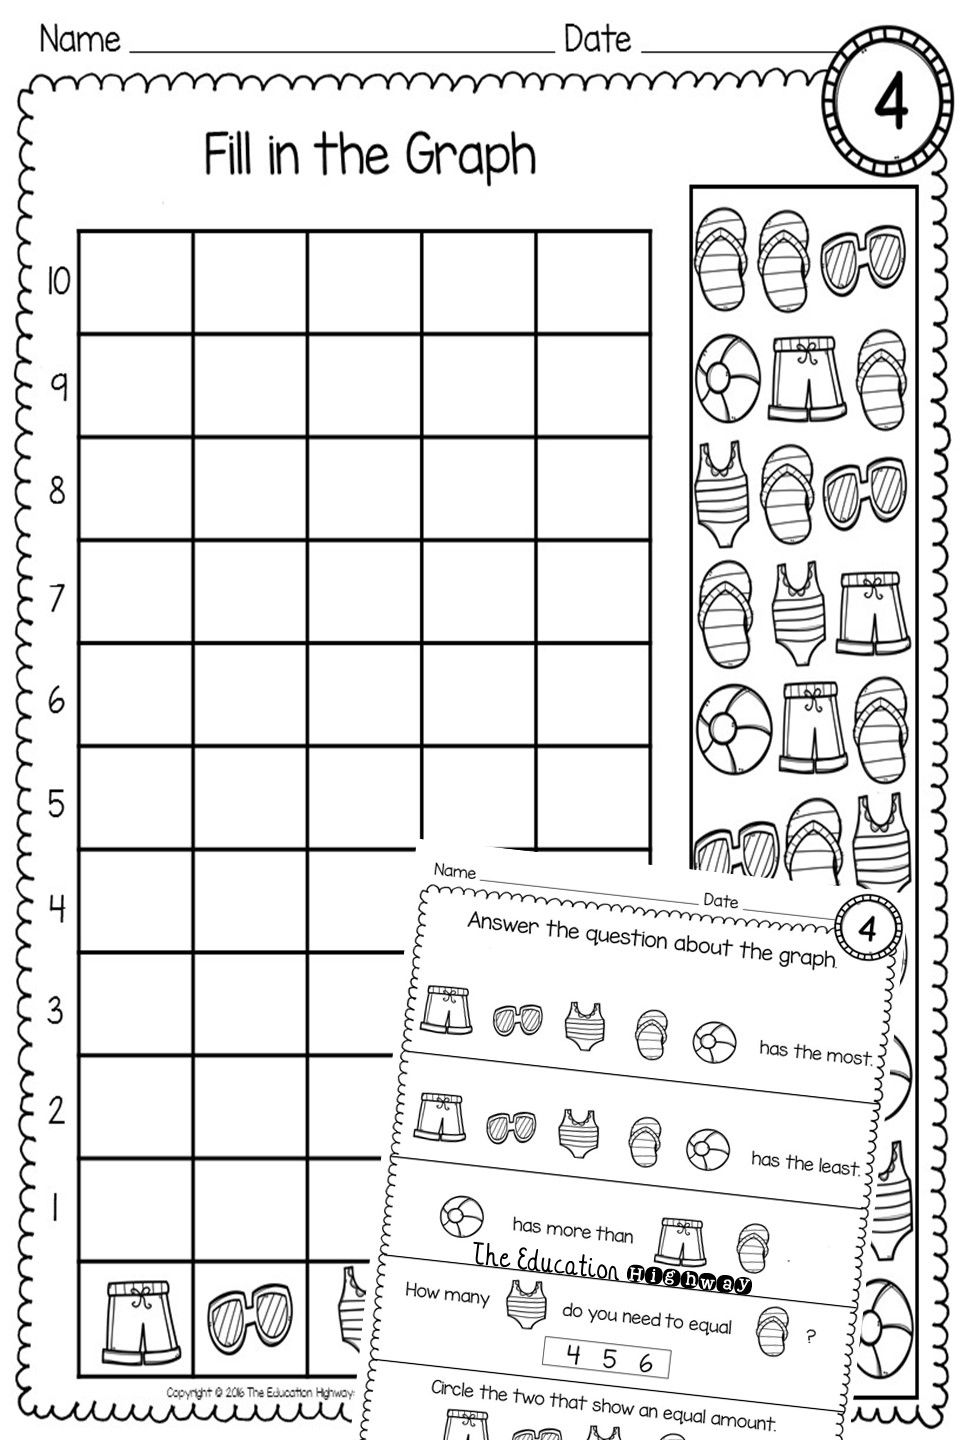 Free Count And Graph Within 10 Perfect Math Practice For Kindergarten And First Graders 4 Graphs To Count And Fill In Graphing Math Sort Free Math Resources [ 1440 x 960 Pixel ]